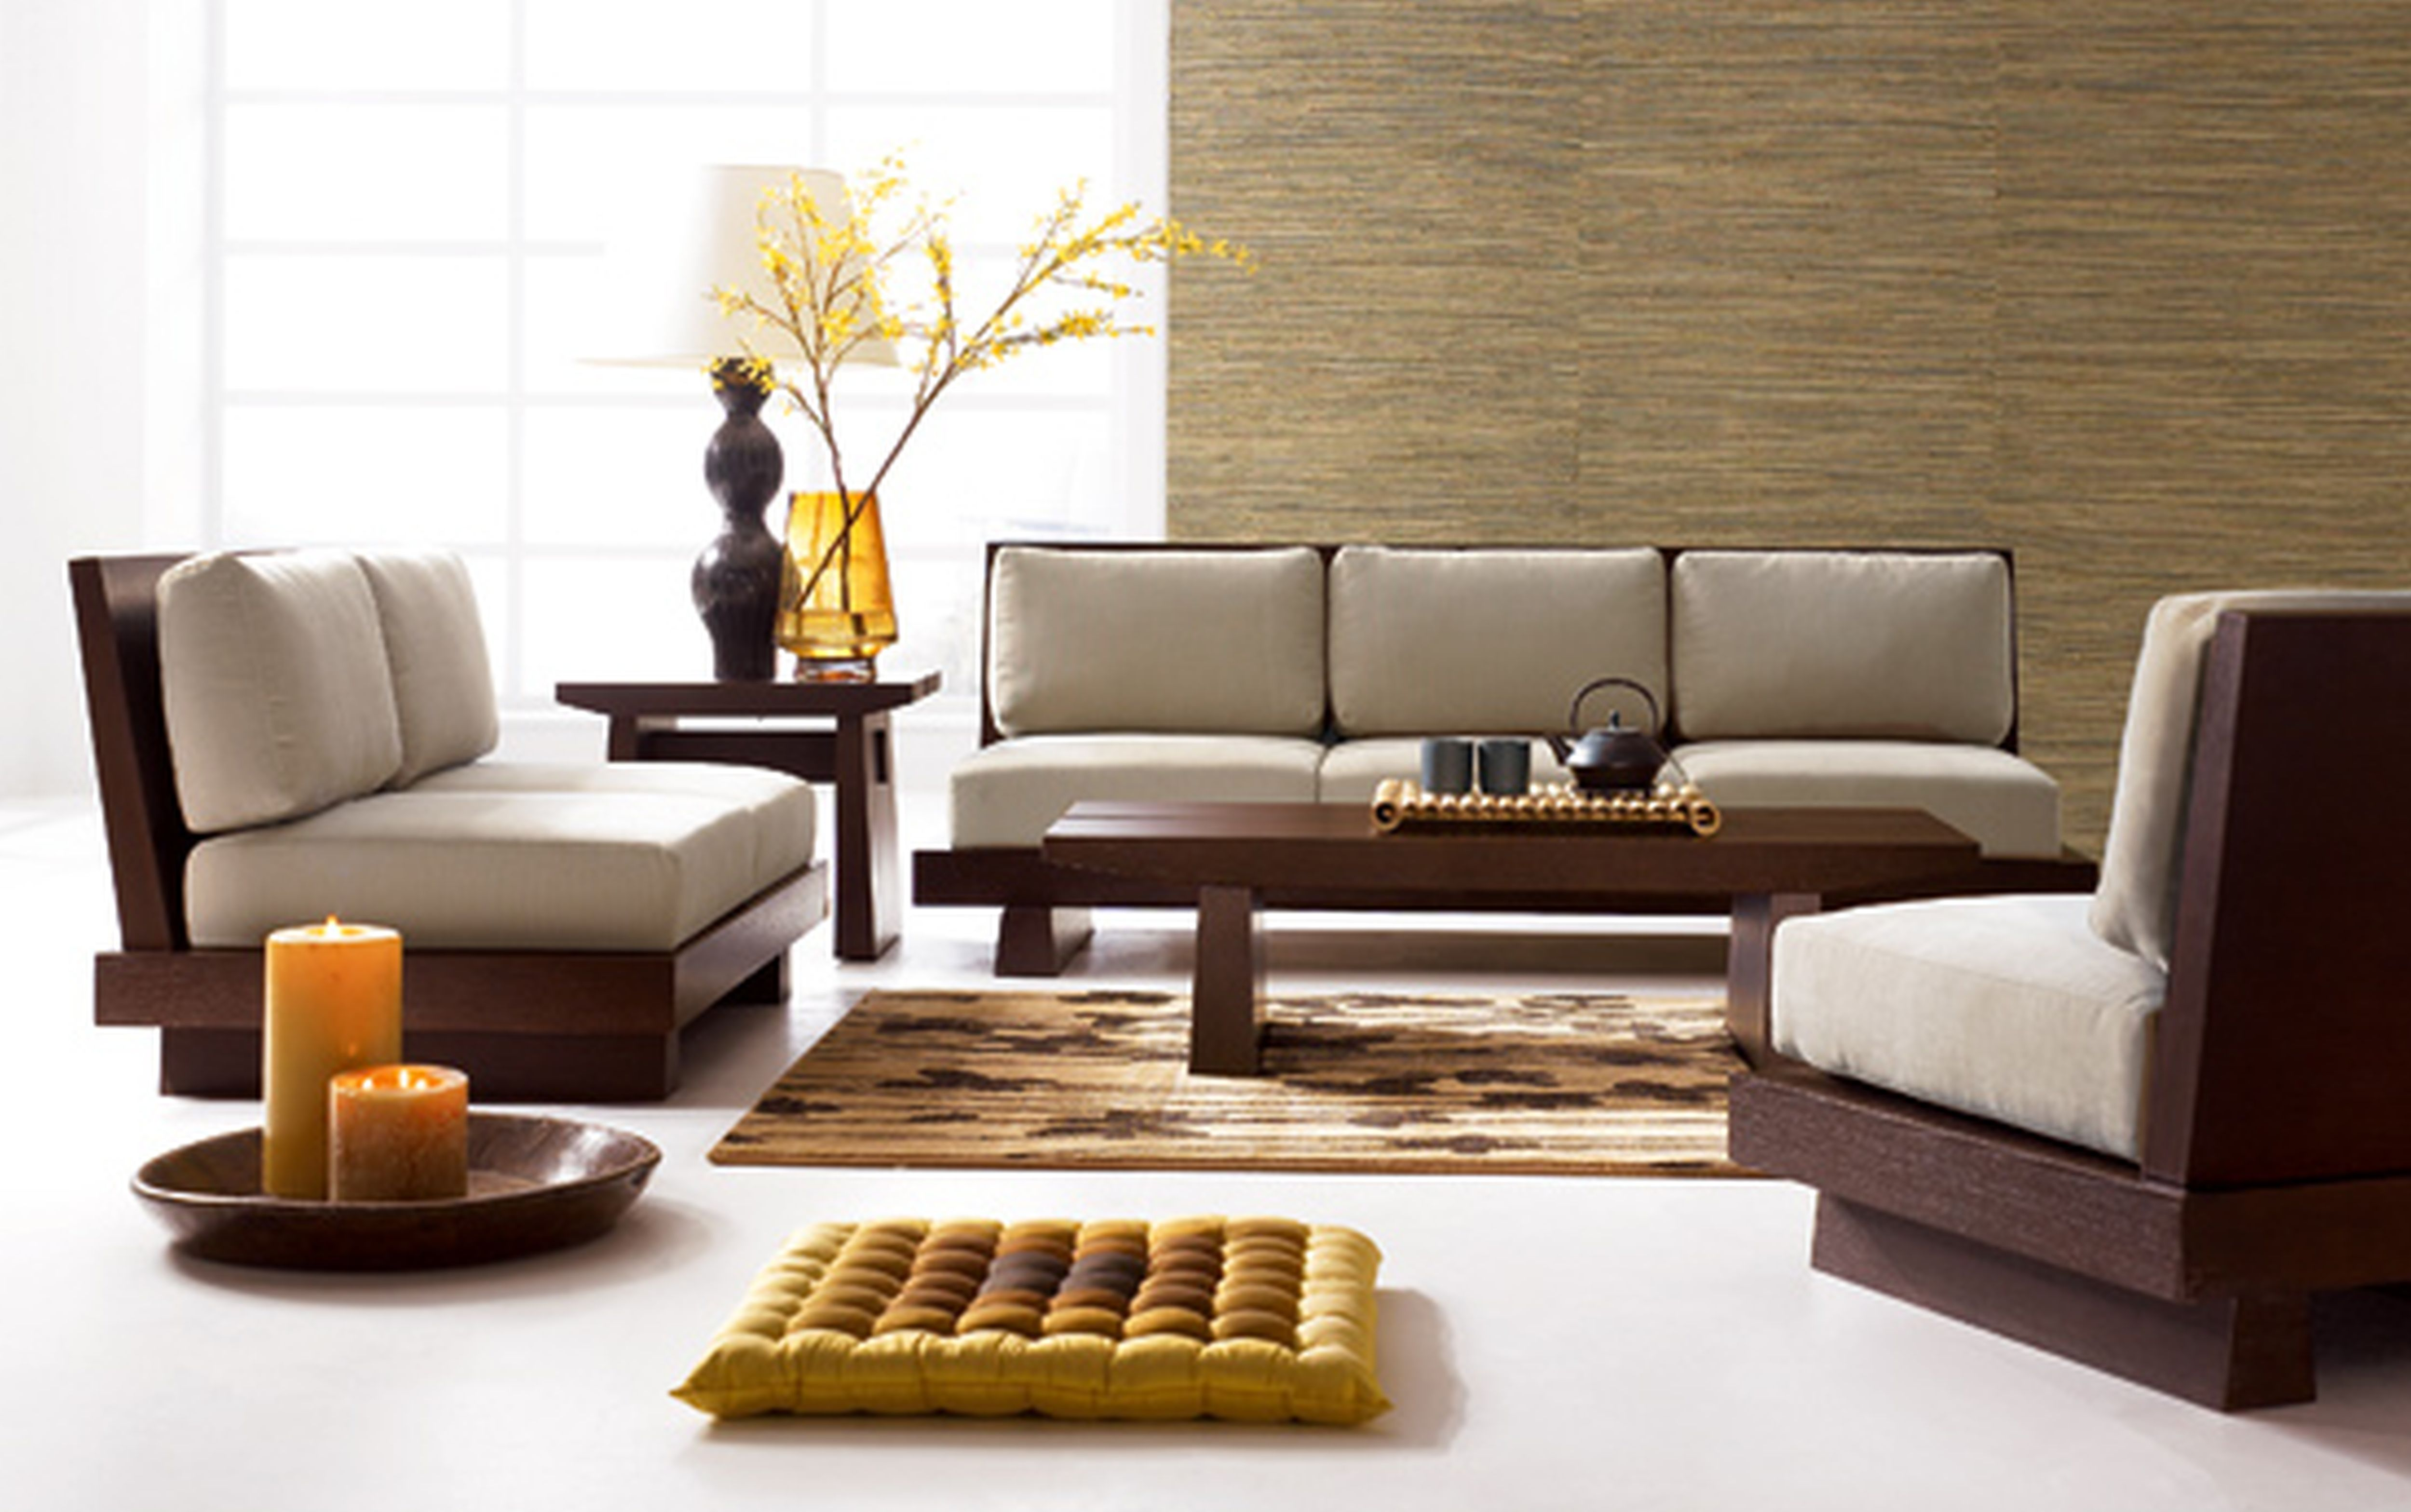 fancy sectional sofas ashley furniture wallpaper-Inspirational Sectional sofas ashley Furniture Decoration